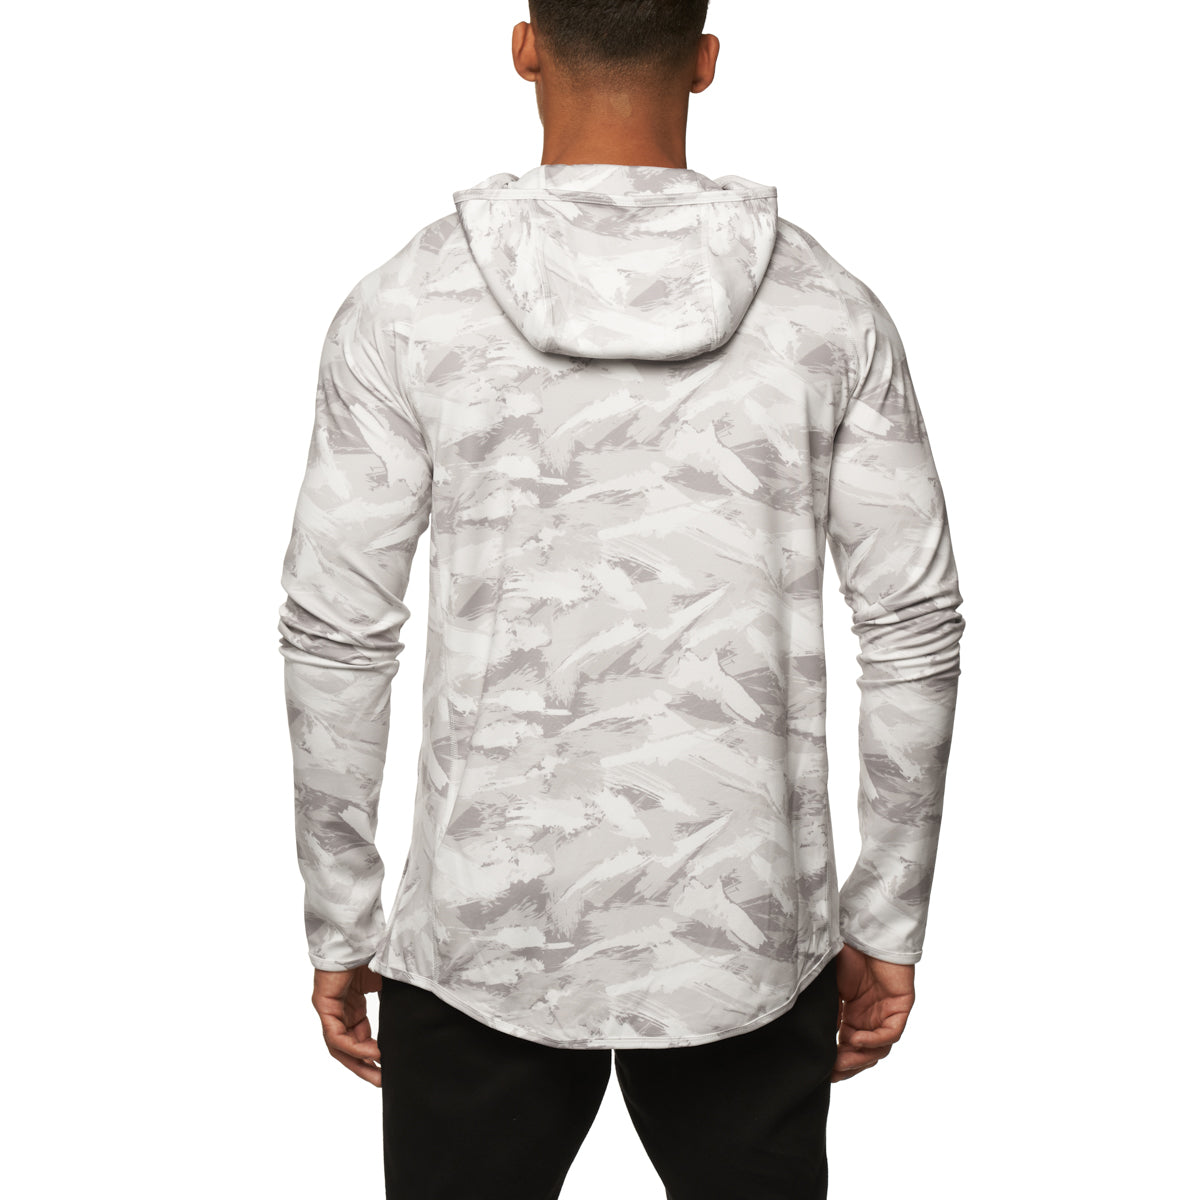 0327. SilverPlus® Fitted Hoodie - White Brushed Camo